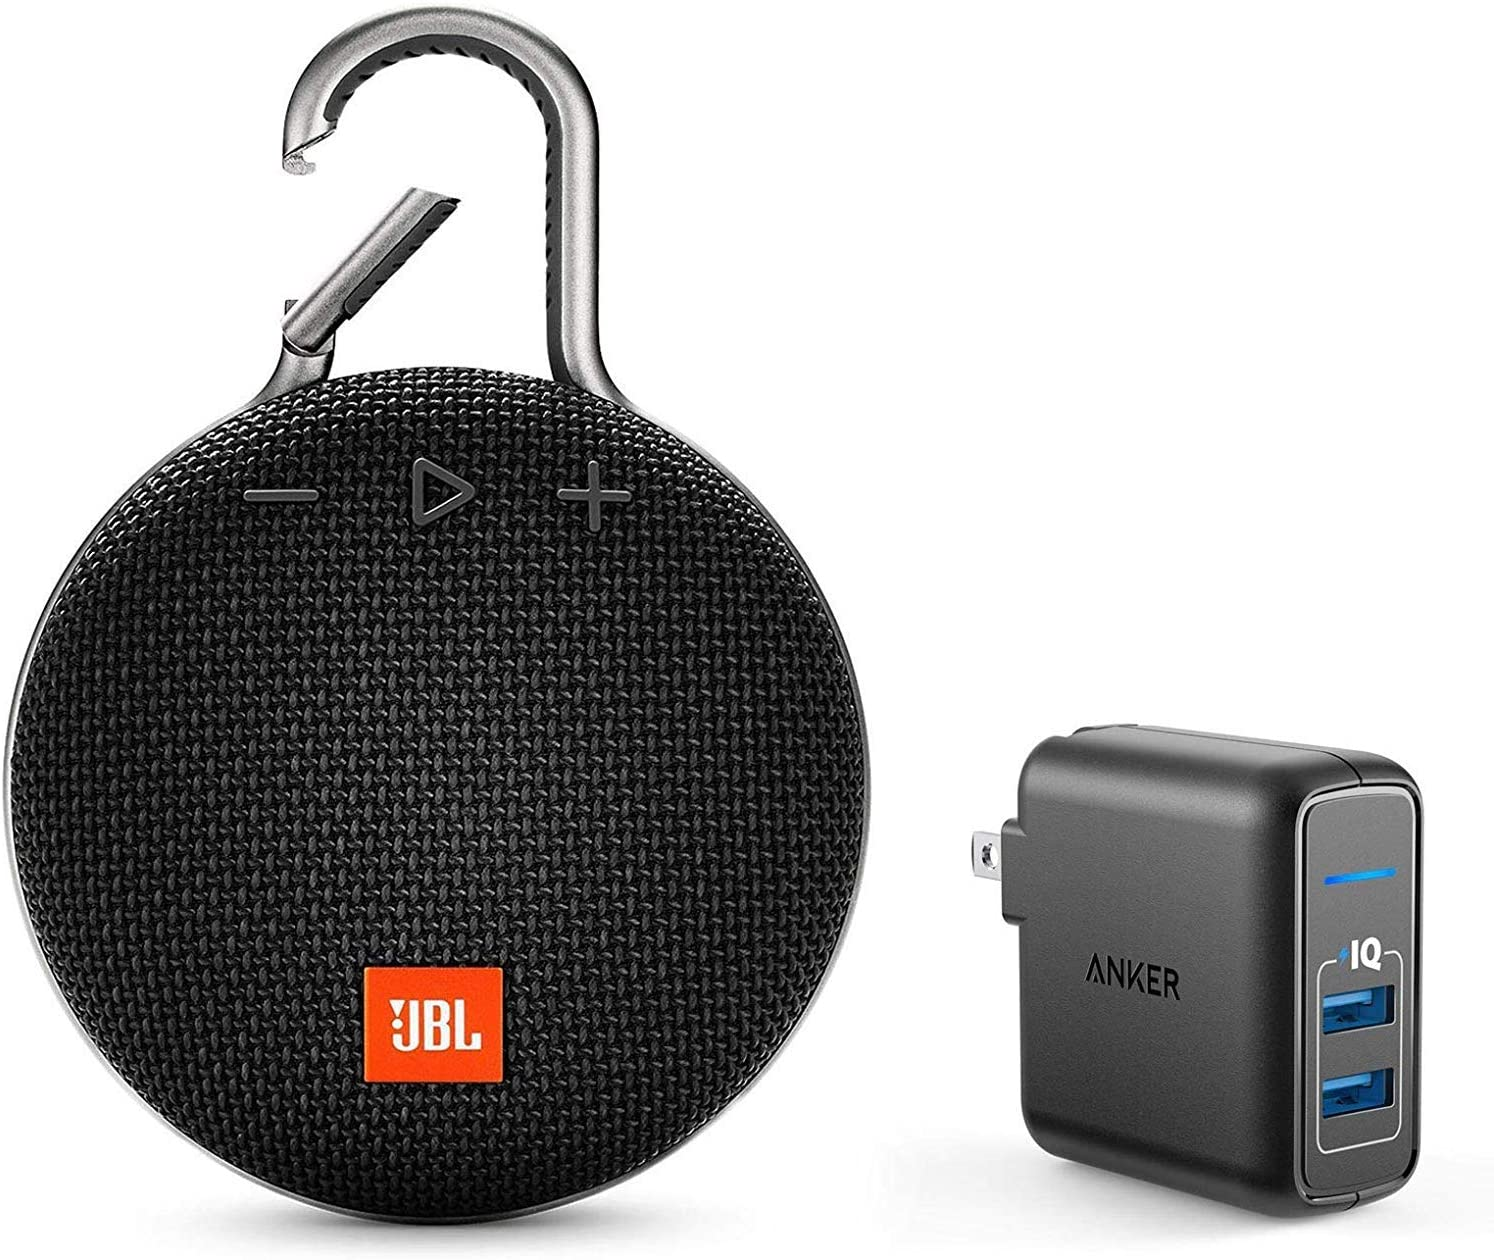 JBL Portable Speaker with Dual Port in pink